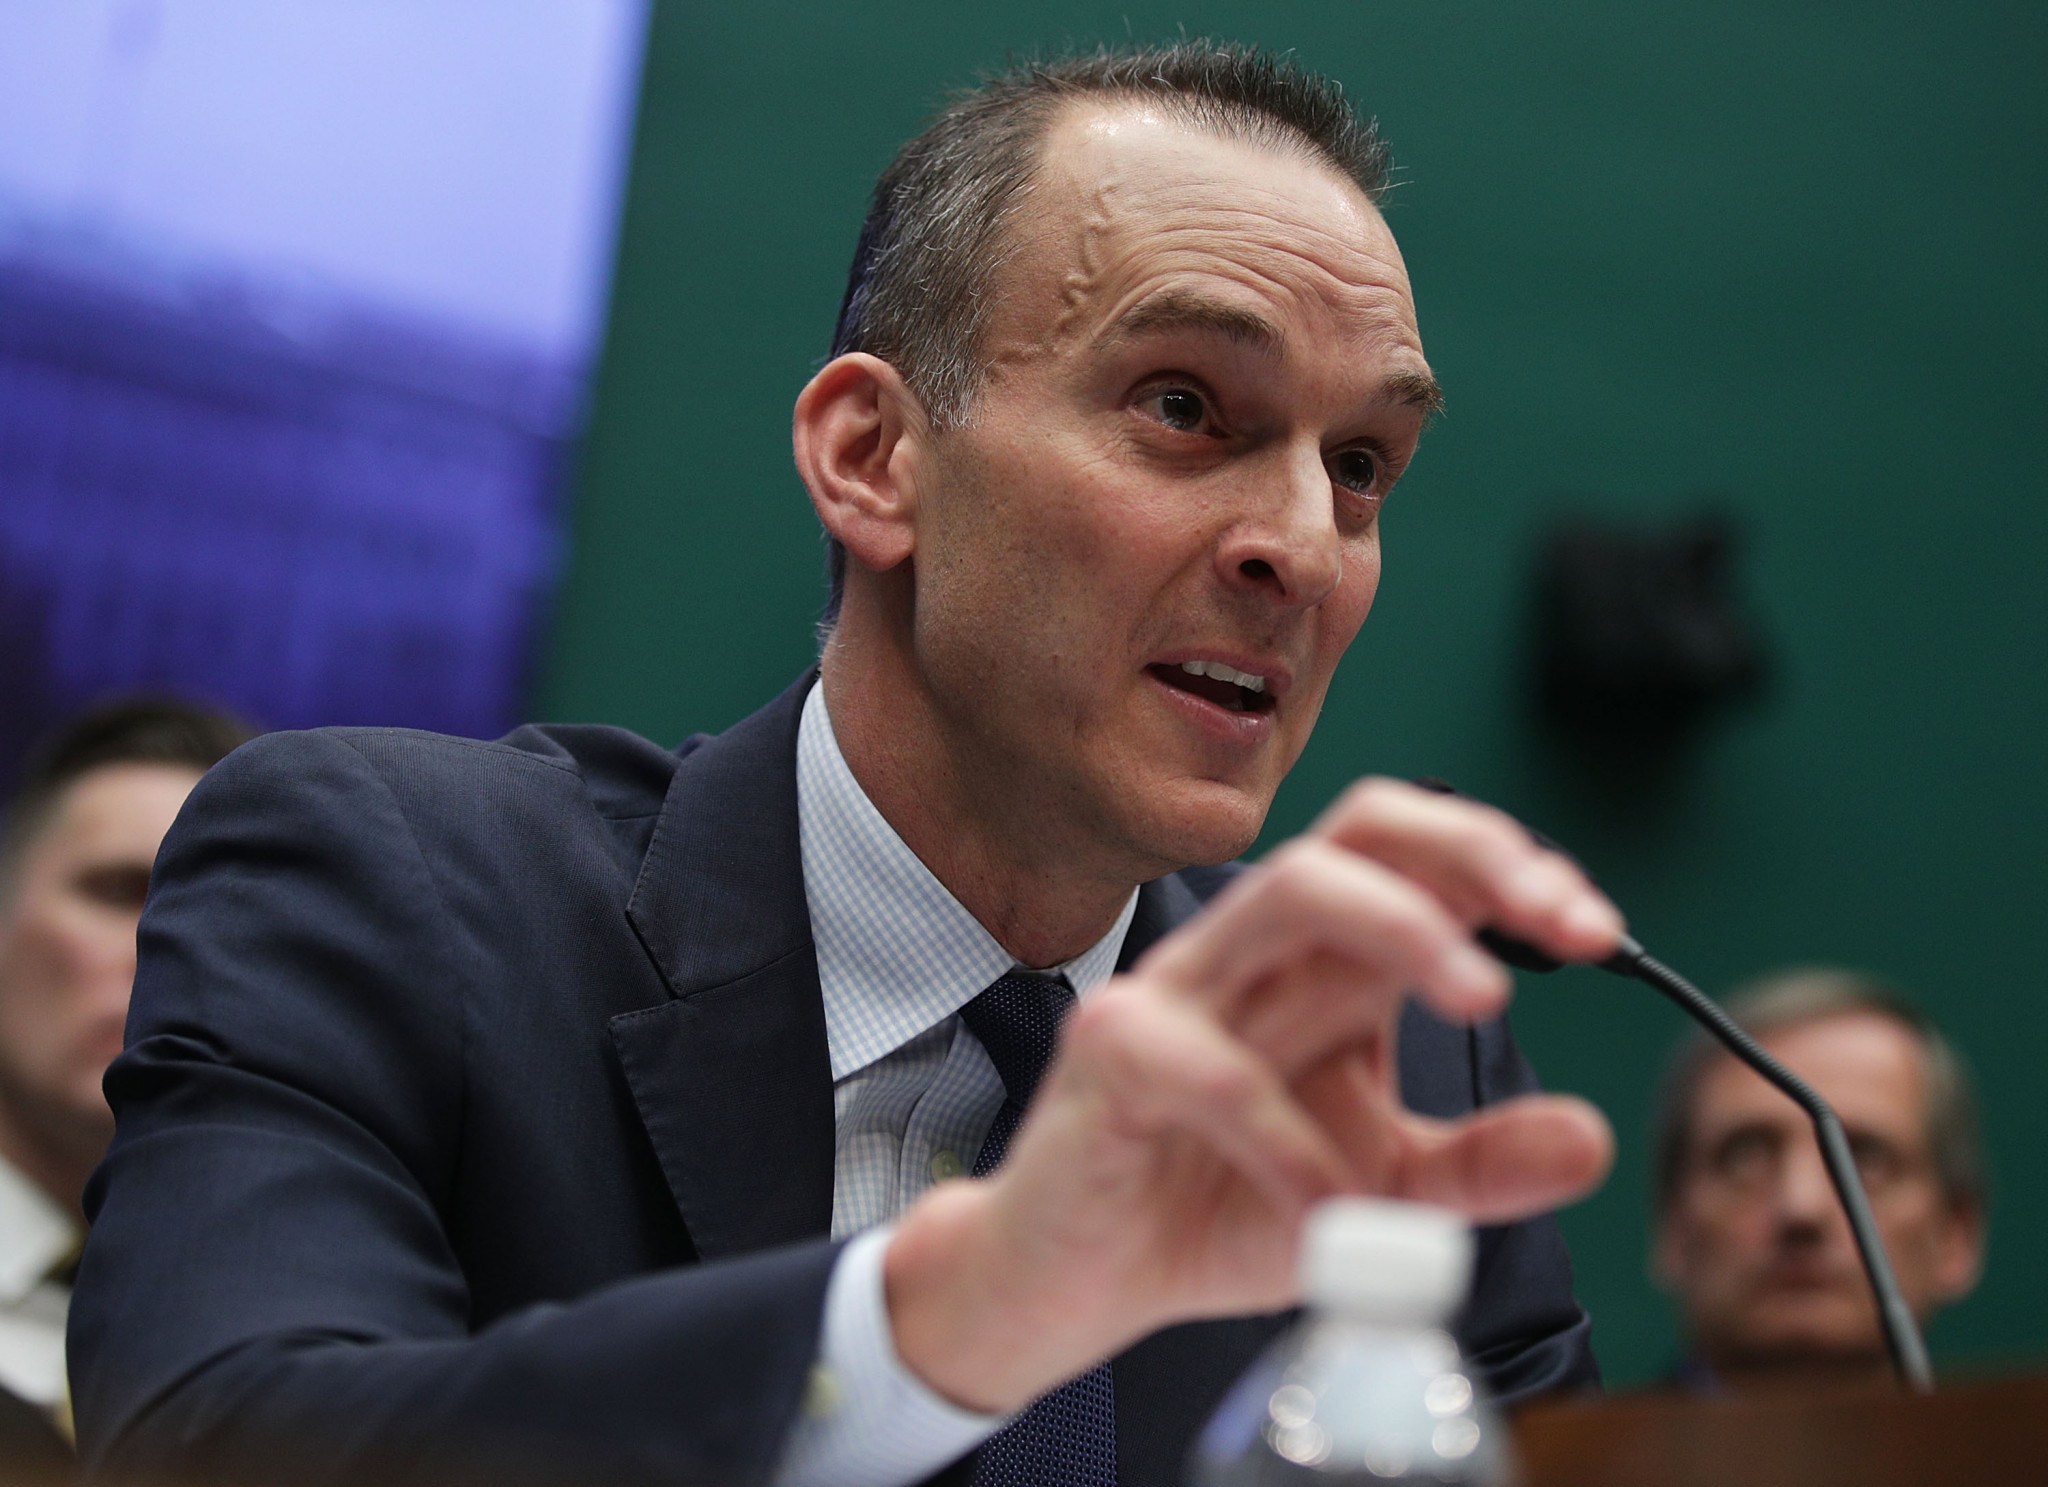 United States Anti-Doping Agency head Travis Tygart has called the Act